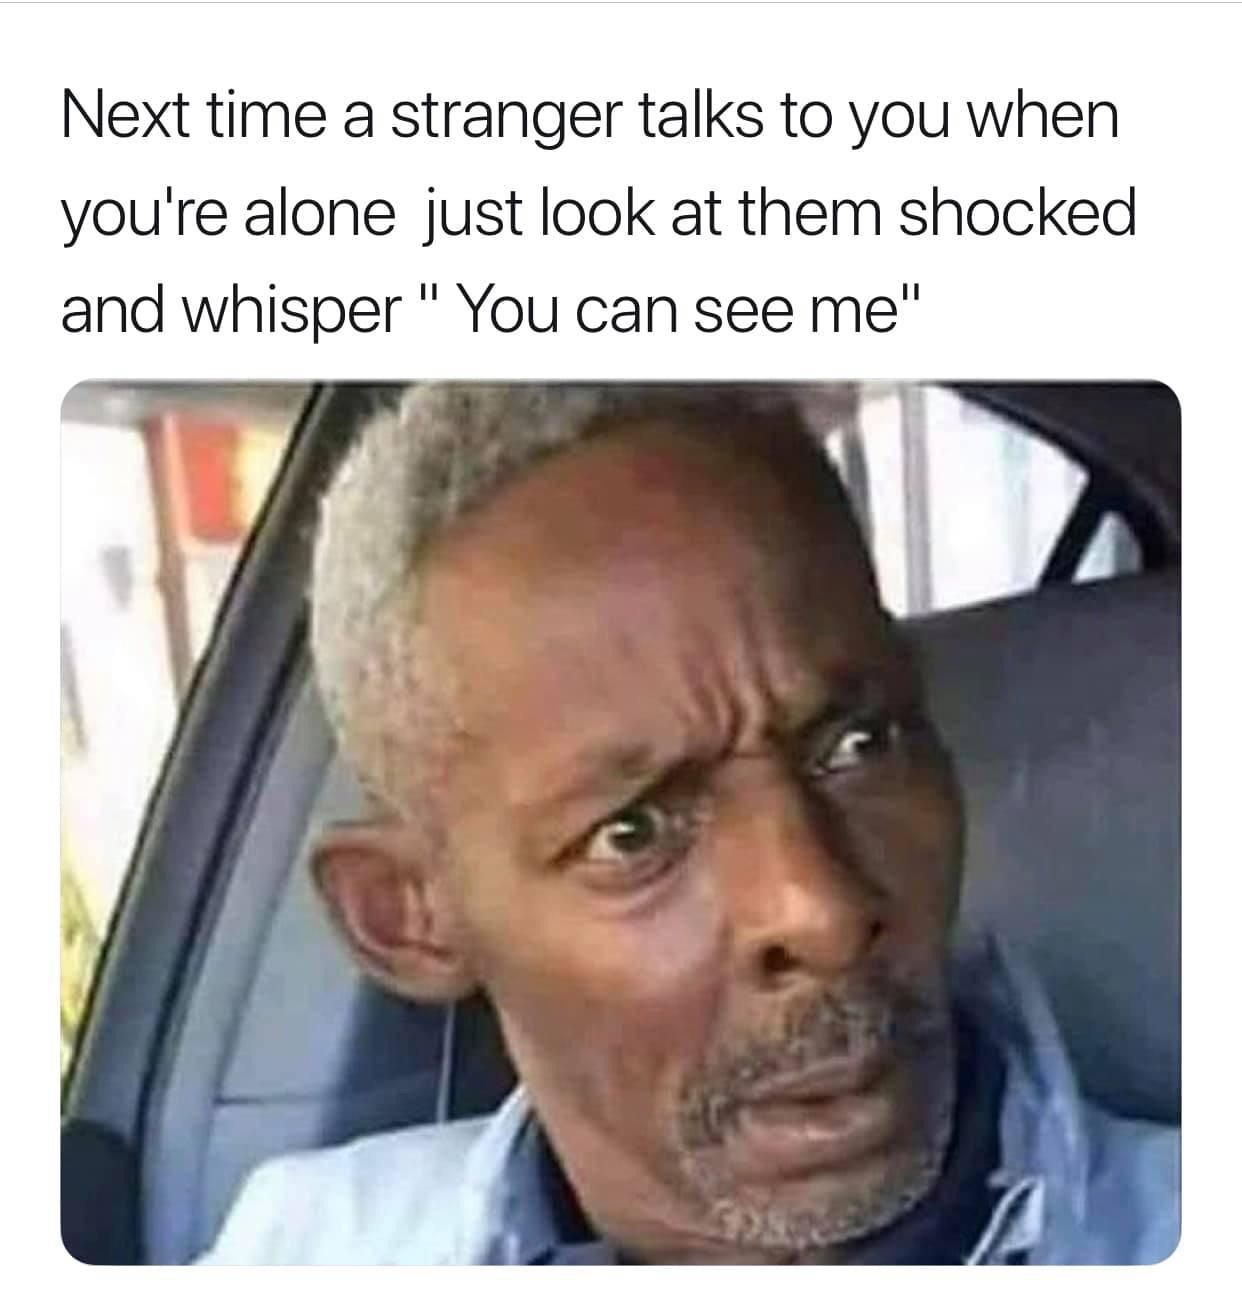 A stranger with special eyesight